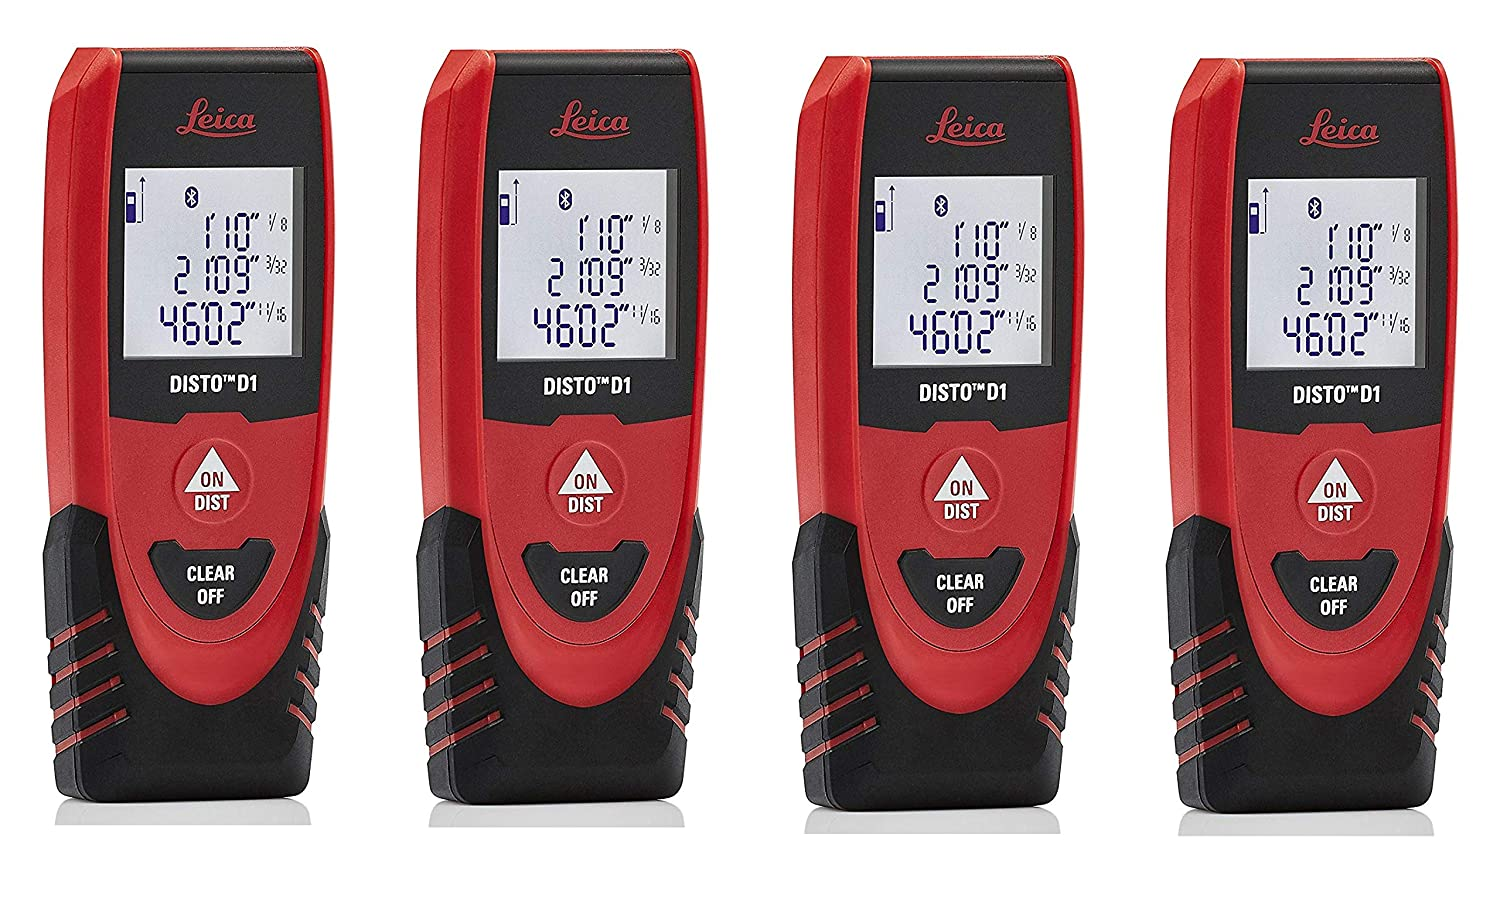 Amazon.com: Leica DISTO D1 130ft Laser Distance Measure with Bluetooth 4.0, Black/Red (2 Pack): Home Improvement